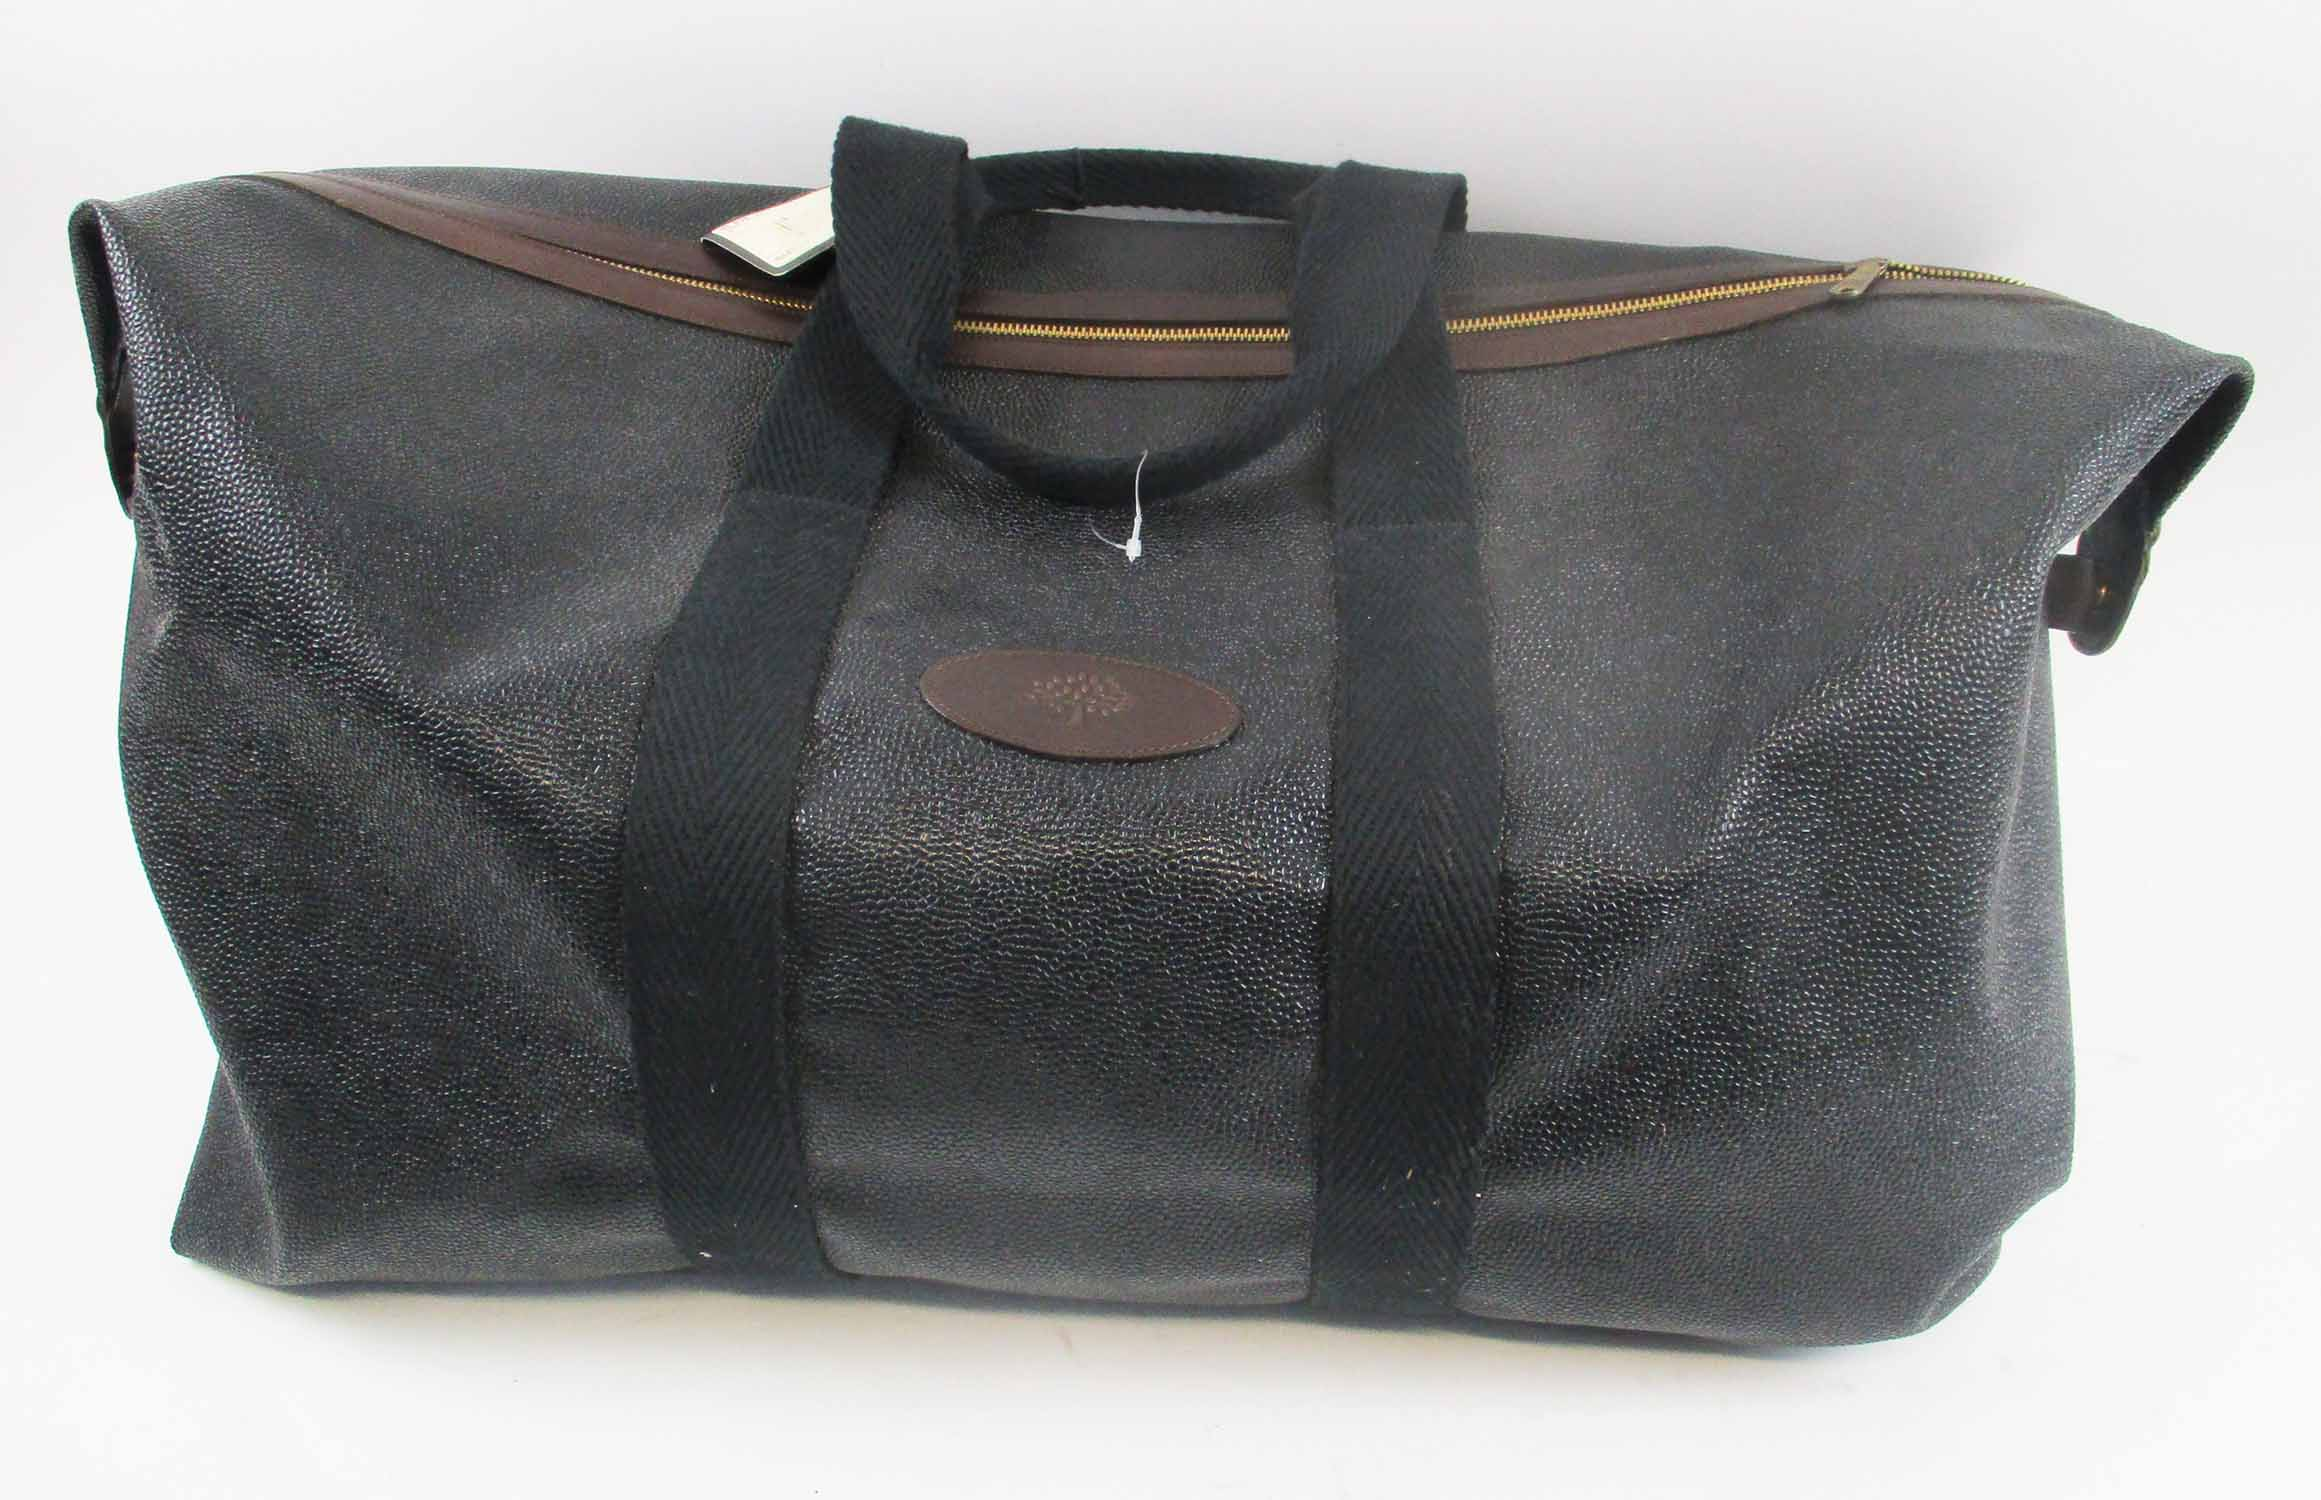 76f58c26f19 MULBERRY SCOTCHGRAIN CLIPPER BAG, 56cm L, with retailers tag.